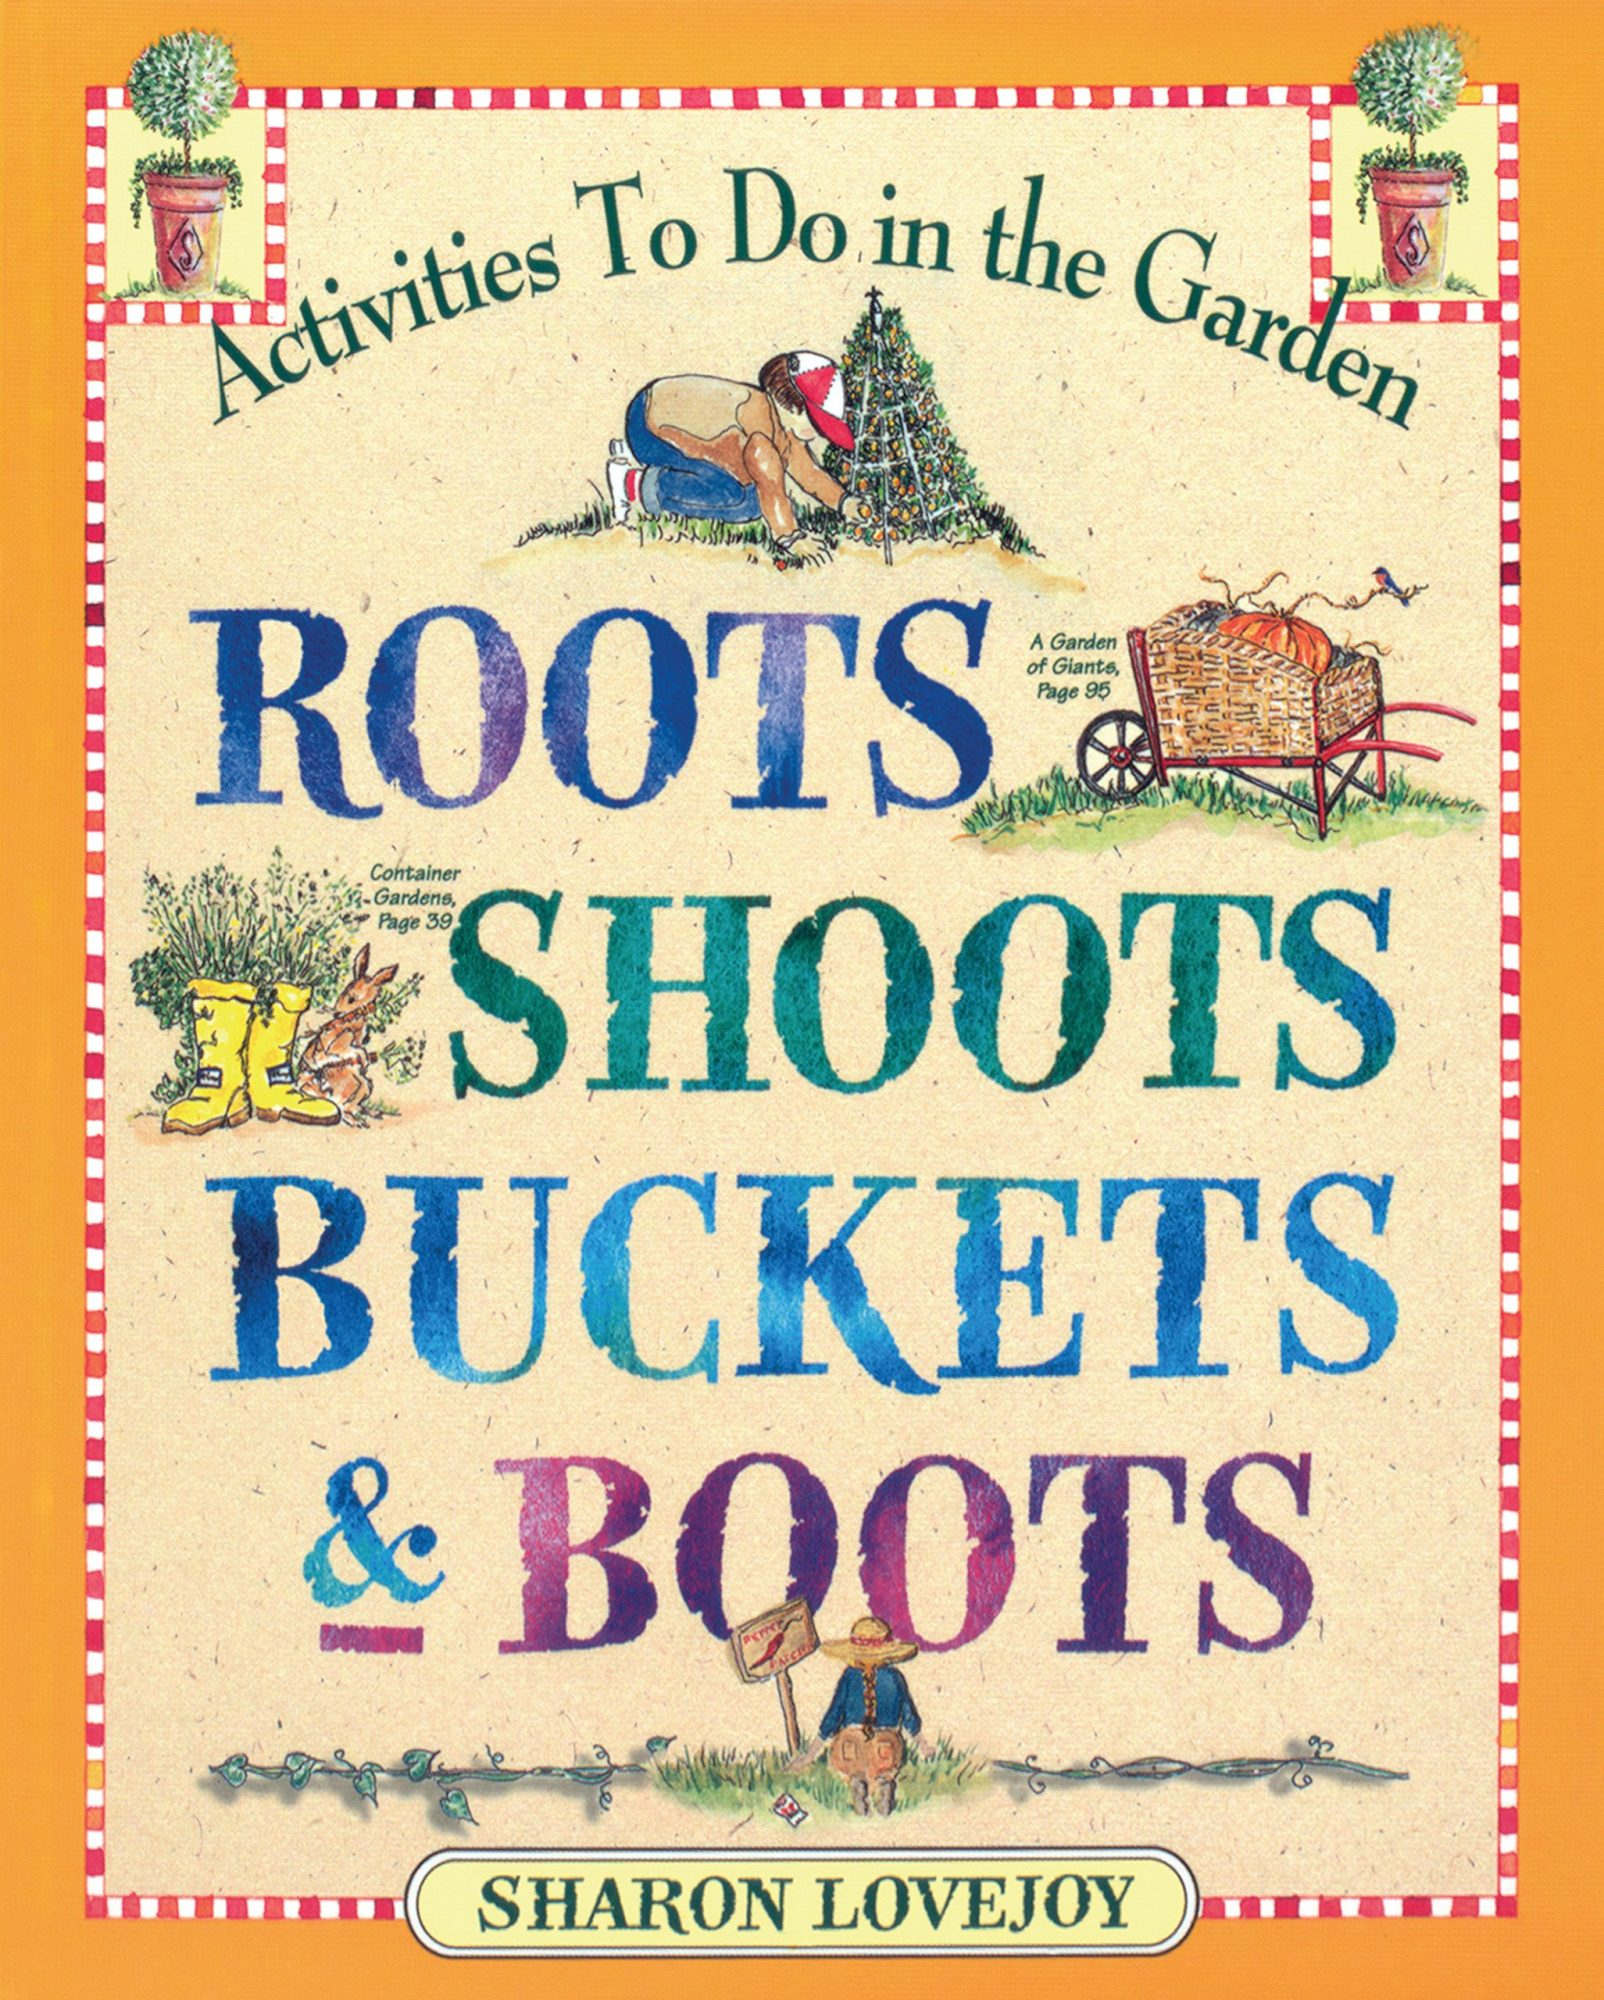 Roots, Shoots, Buckets & Boots: Gardening Together with Children by Sharon Lovejoy